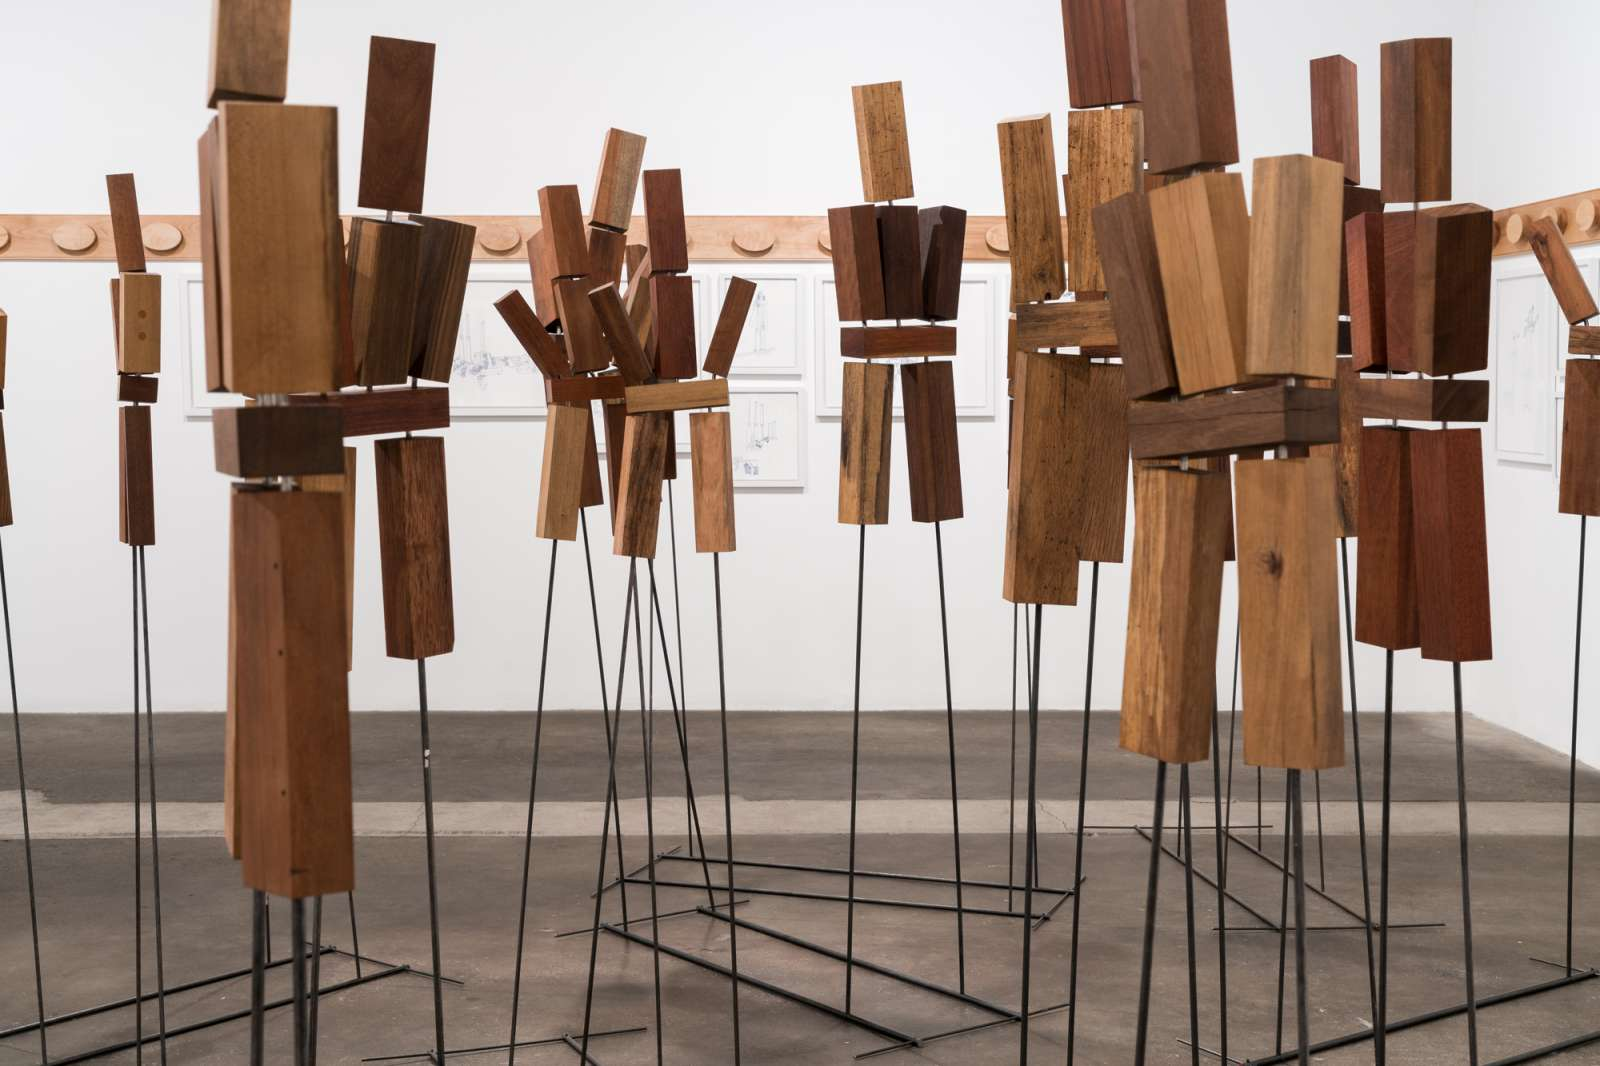 Pile the Wood High!, installation view.  © Midway Contemporary Art. Photo: Caylon Hackwith